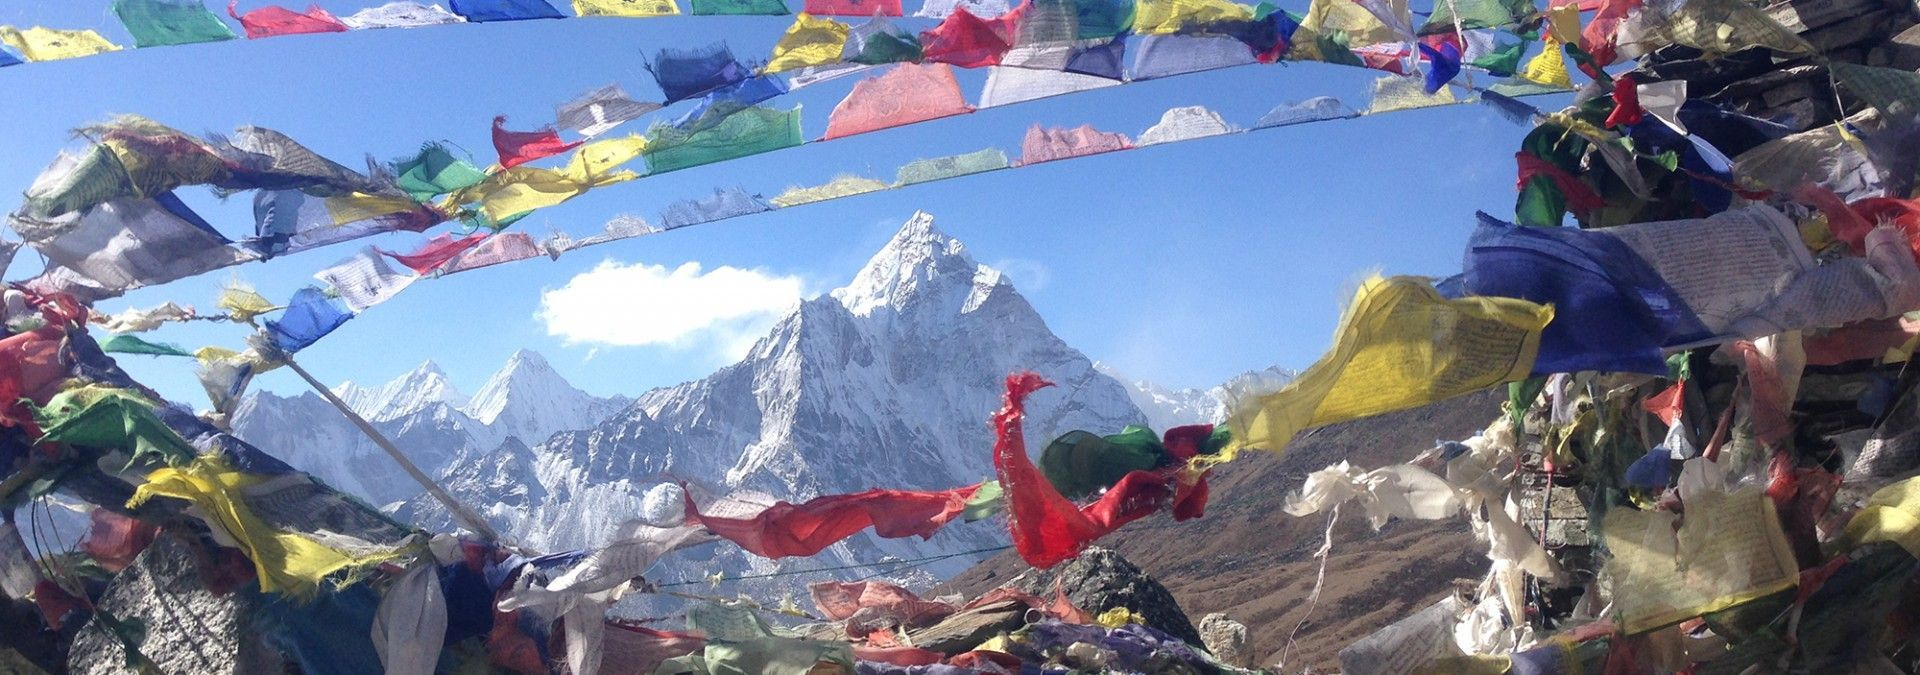 1478260855-1478260772-view_of_everest_through_prayer_flagsjpg